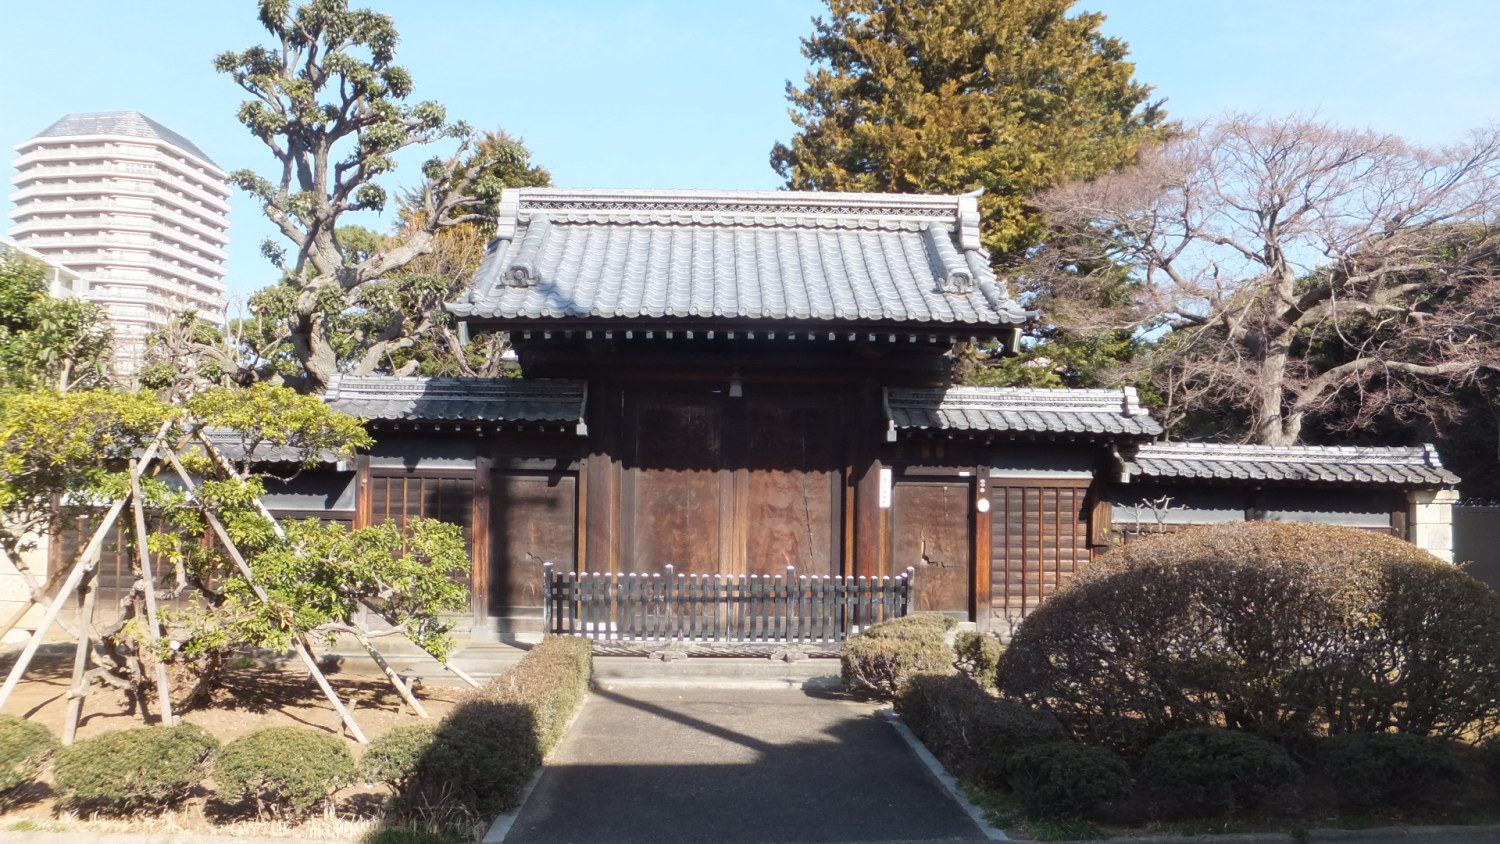 Is it samurai residence? It is the gate of this